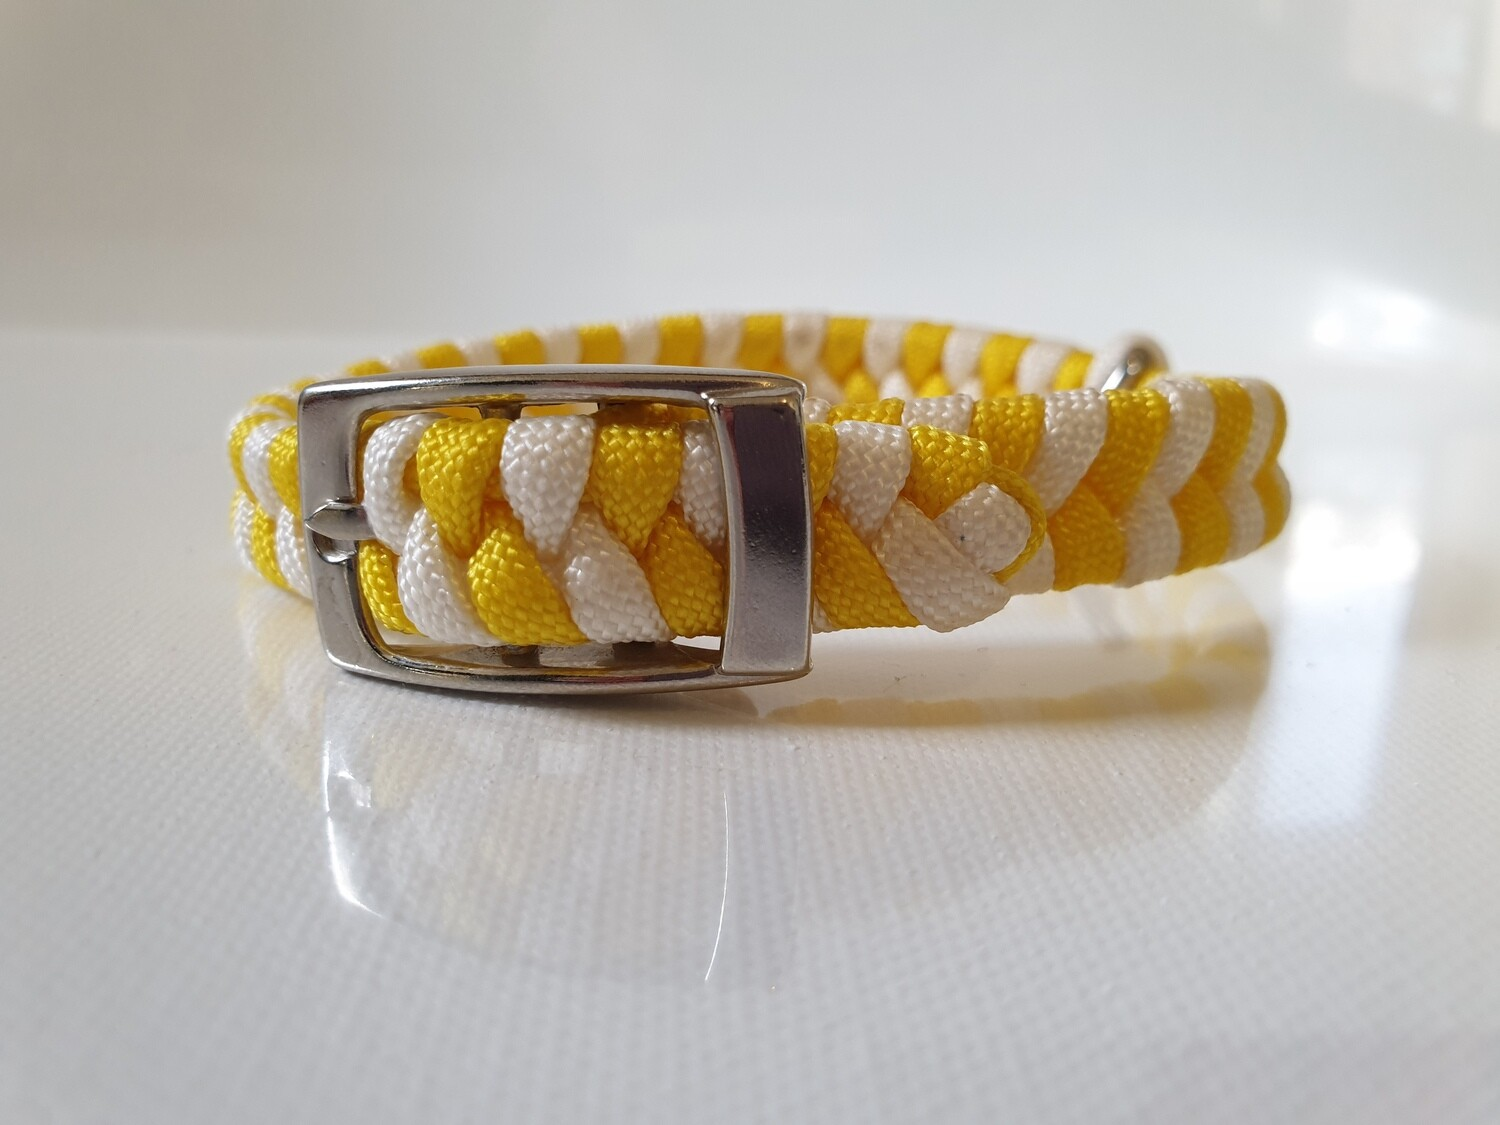 Flat Braid Extra Small Yellow/White Dog Collar